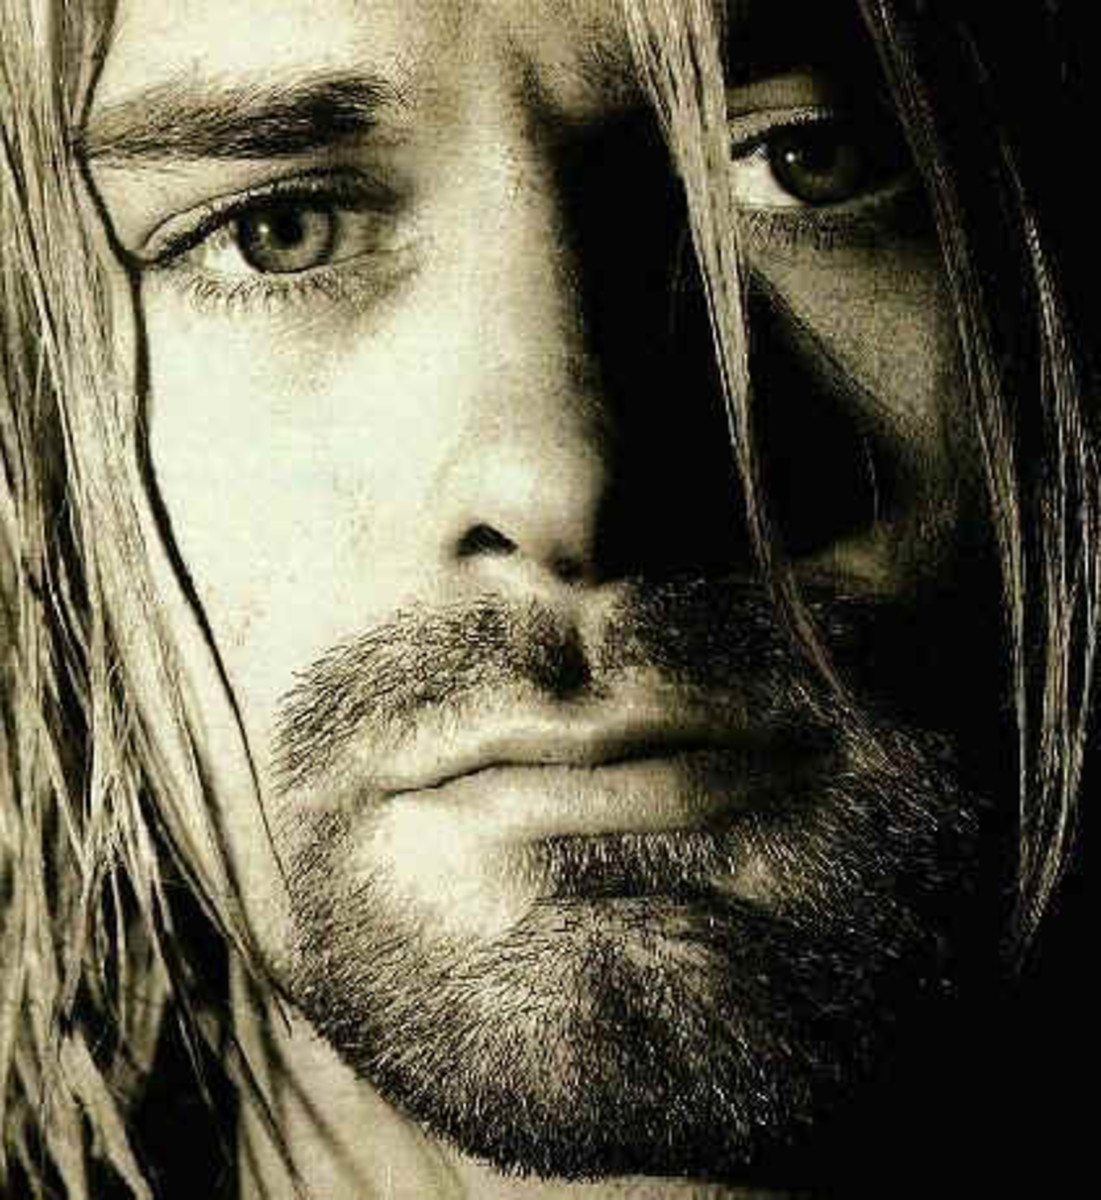 1. Kurt Cobain of Nirvana - The king of the rock/metal world. Long gone and still the most gorgeous rocker of all time.